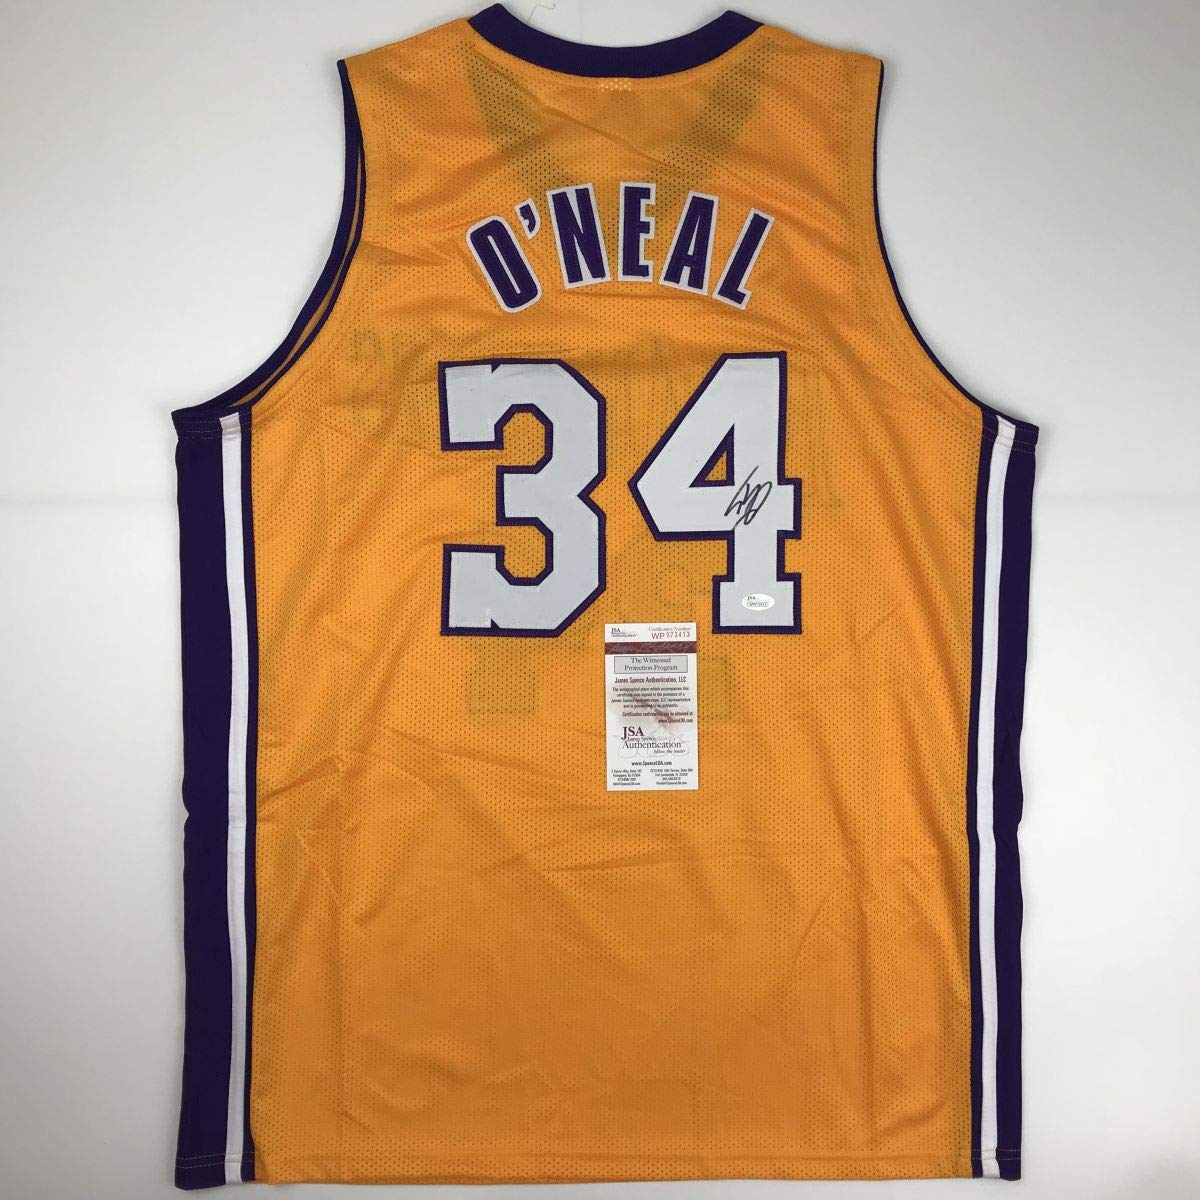 05326bbbb2a Autographed/Signed Shaquille Shaq O'Neal Los Angeles LA Yellow Basketball  Jersey JSA COA at Amazon's Sports Collectibles Store